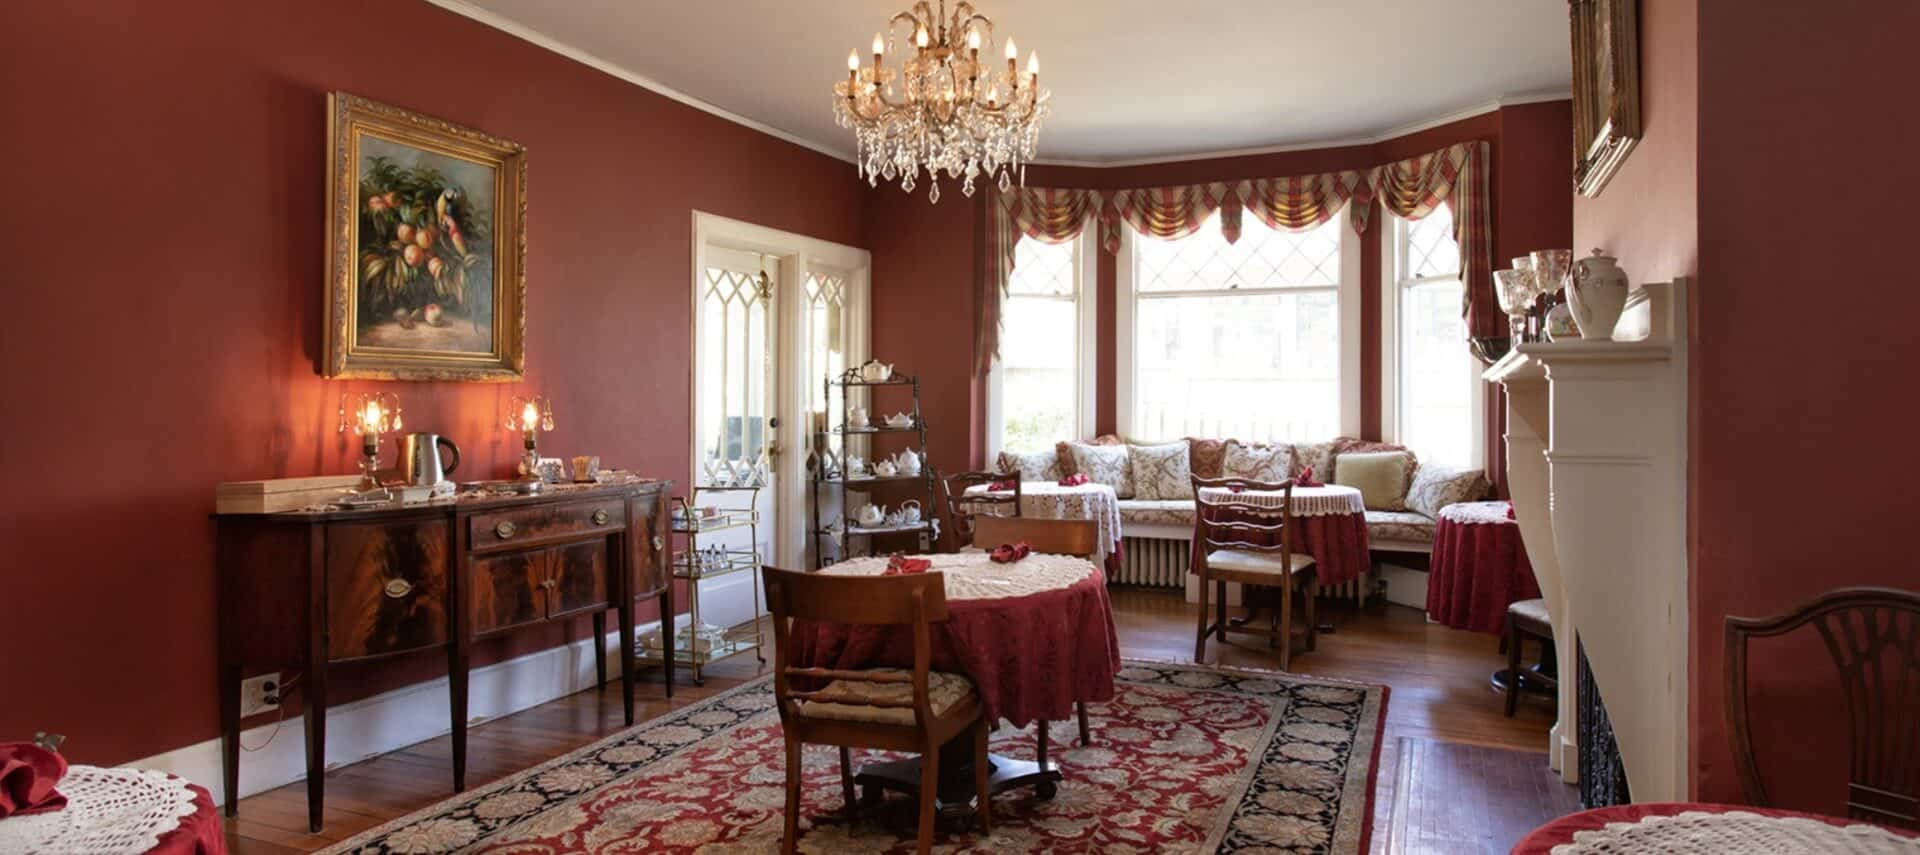 Luxurious and elegant dining room with tables set for two, antique buffet and window seat with pillows